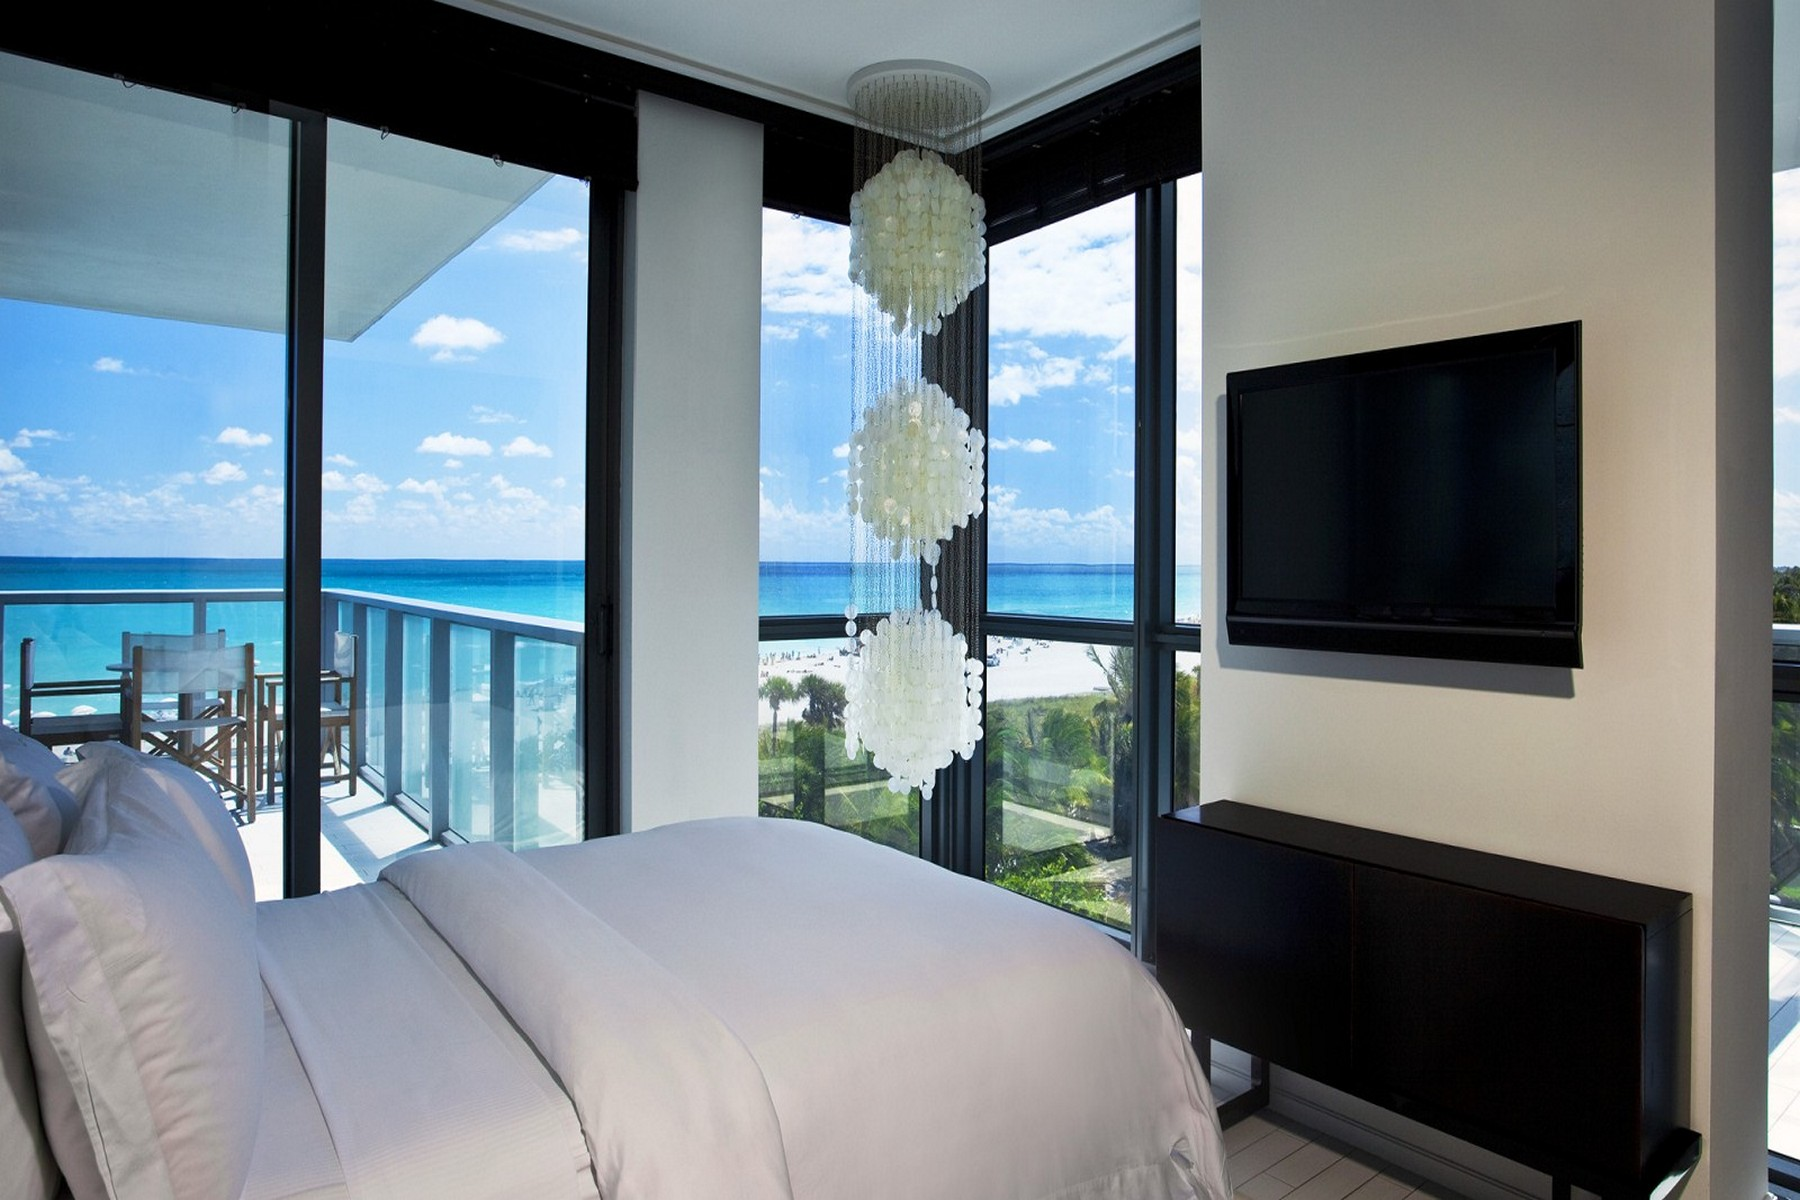 Condominium for Sale at W Hotel #1228 2201 Collins Ave 1228 Miami Beach, Florida, 33139 United States